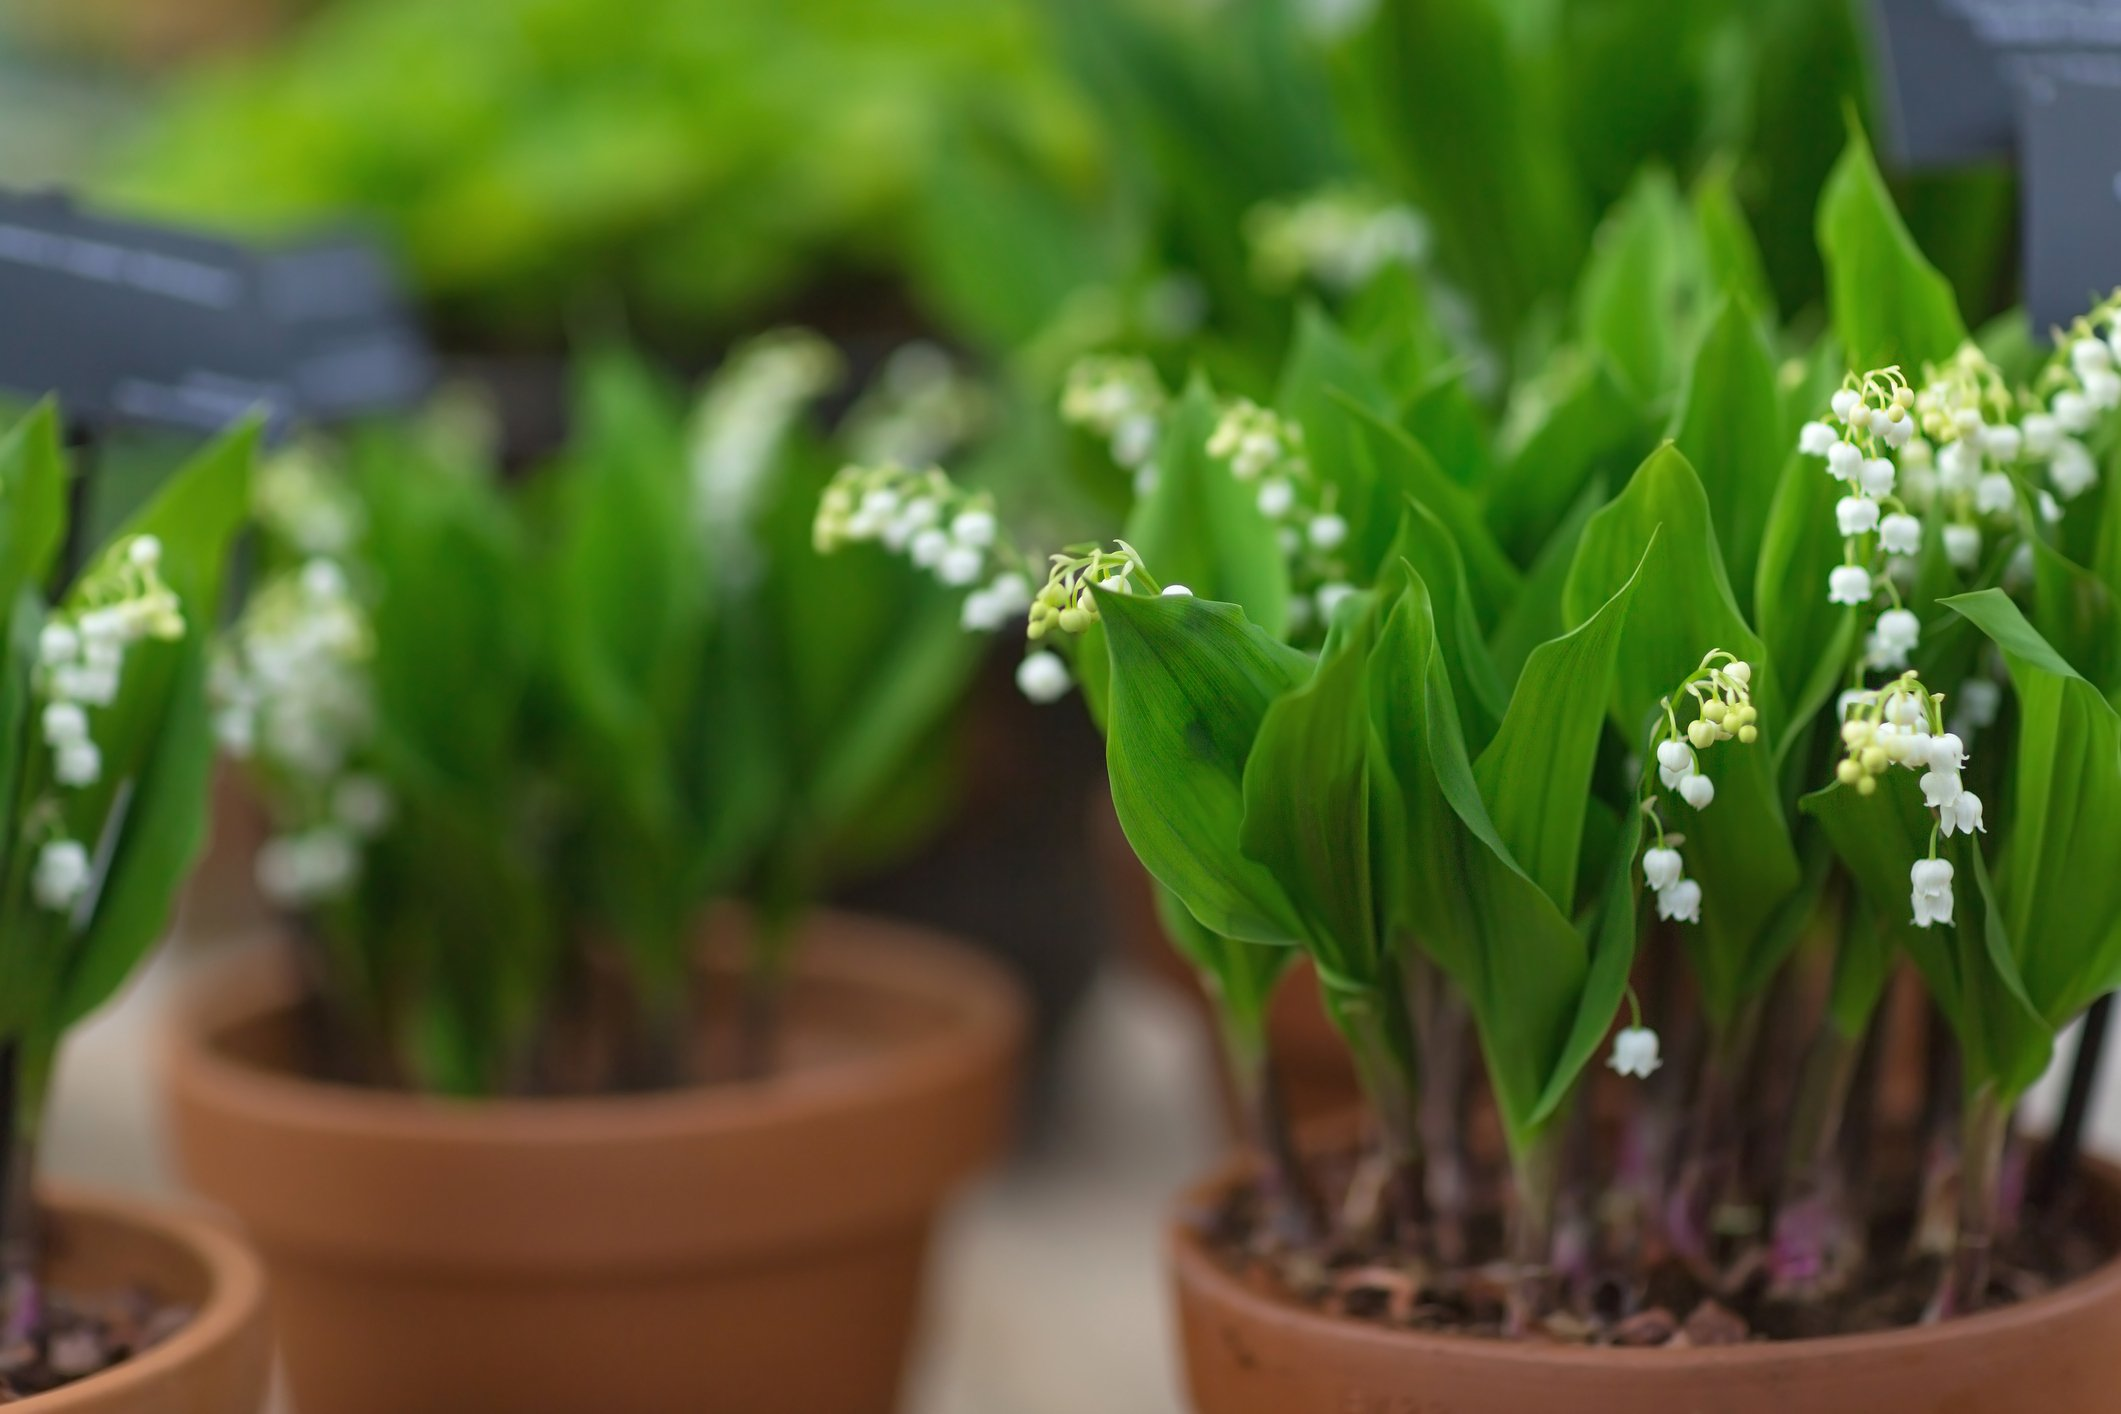 Lily of the valley in a flower pot. Close-up, selective focus, spring concept